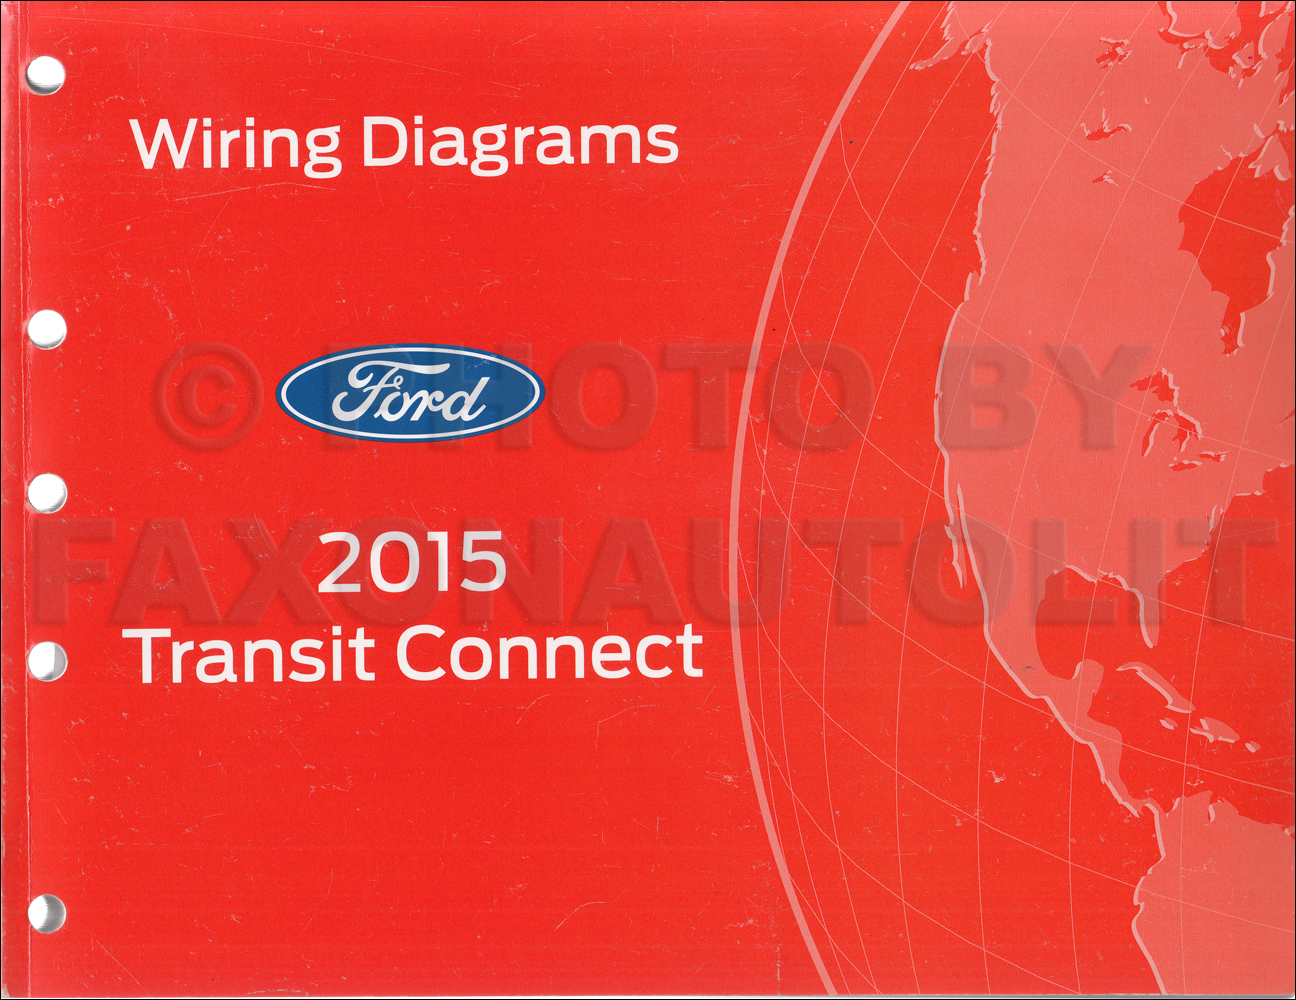 2015FordTransitConnectOWD 2015 ford transit connect wiring diagram manual original 2014 ford transit connect wiring diagram at soozxer.org